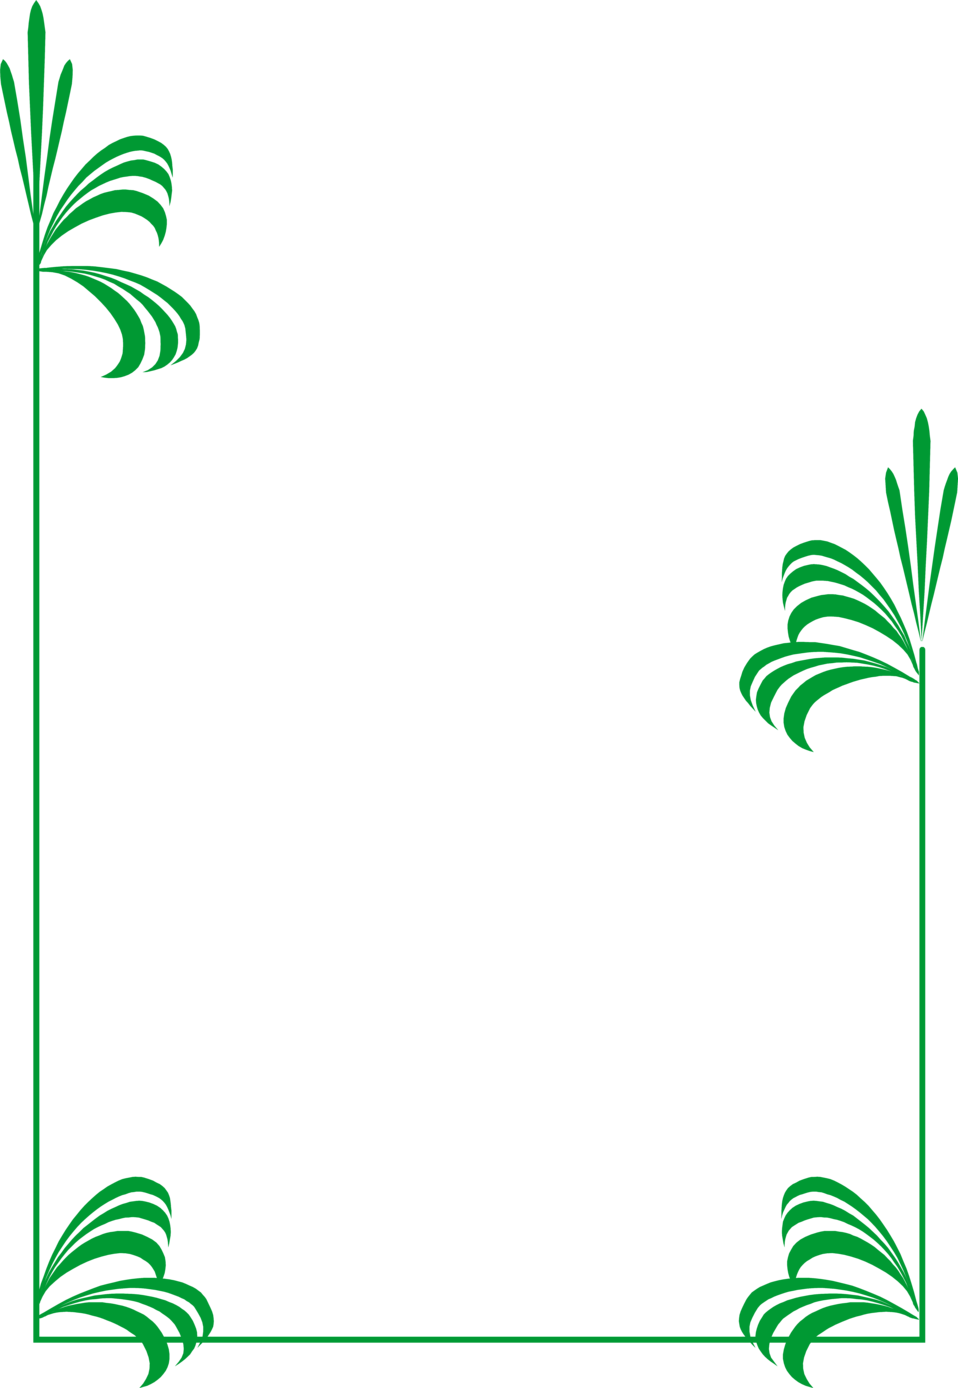 Green frame png pic. Bamboo clipart nature border design banner freeuse